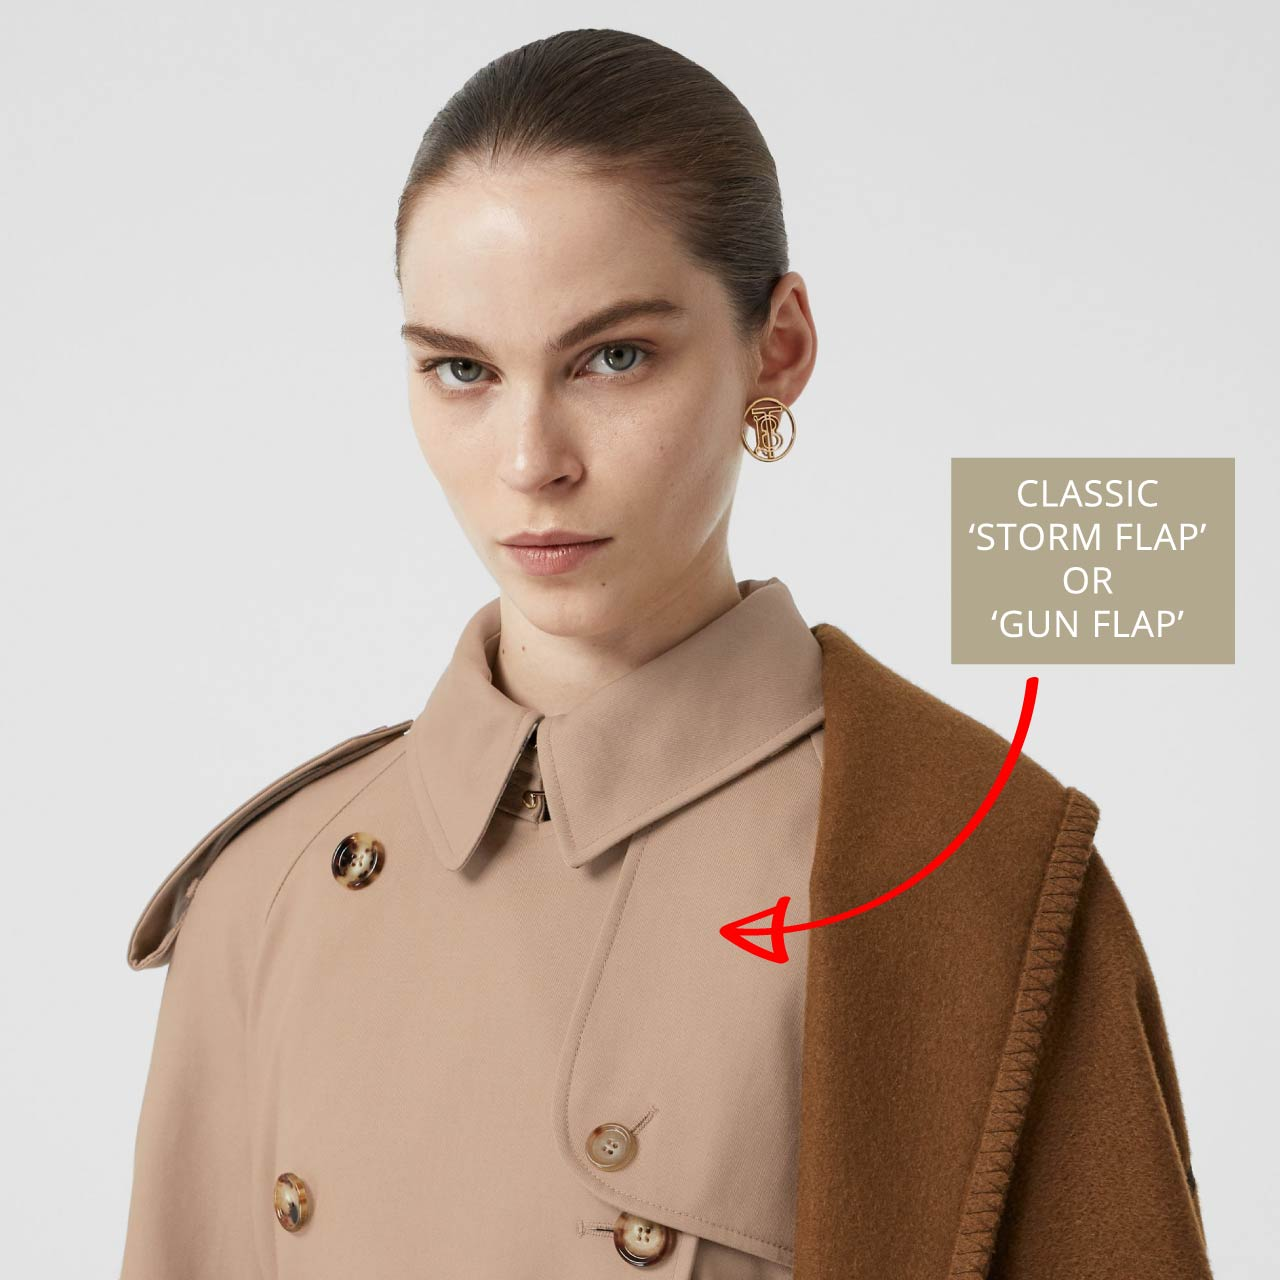 Burberry Trench Coat Details| The Cutting Class. Classic trench coat details such as storm flap or gun flap.